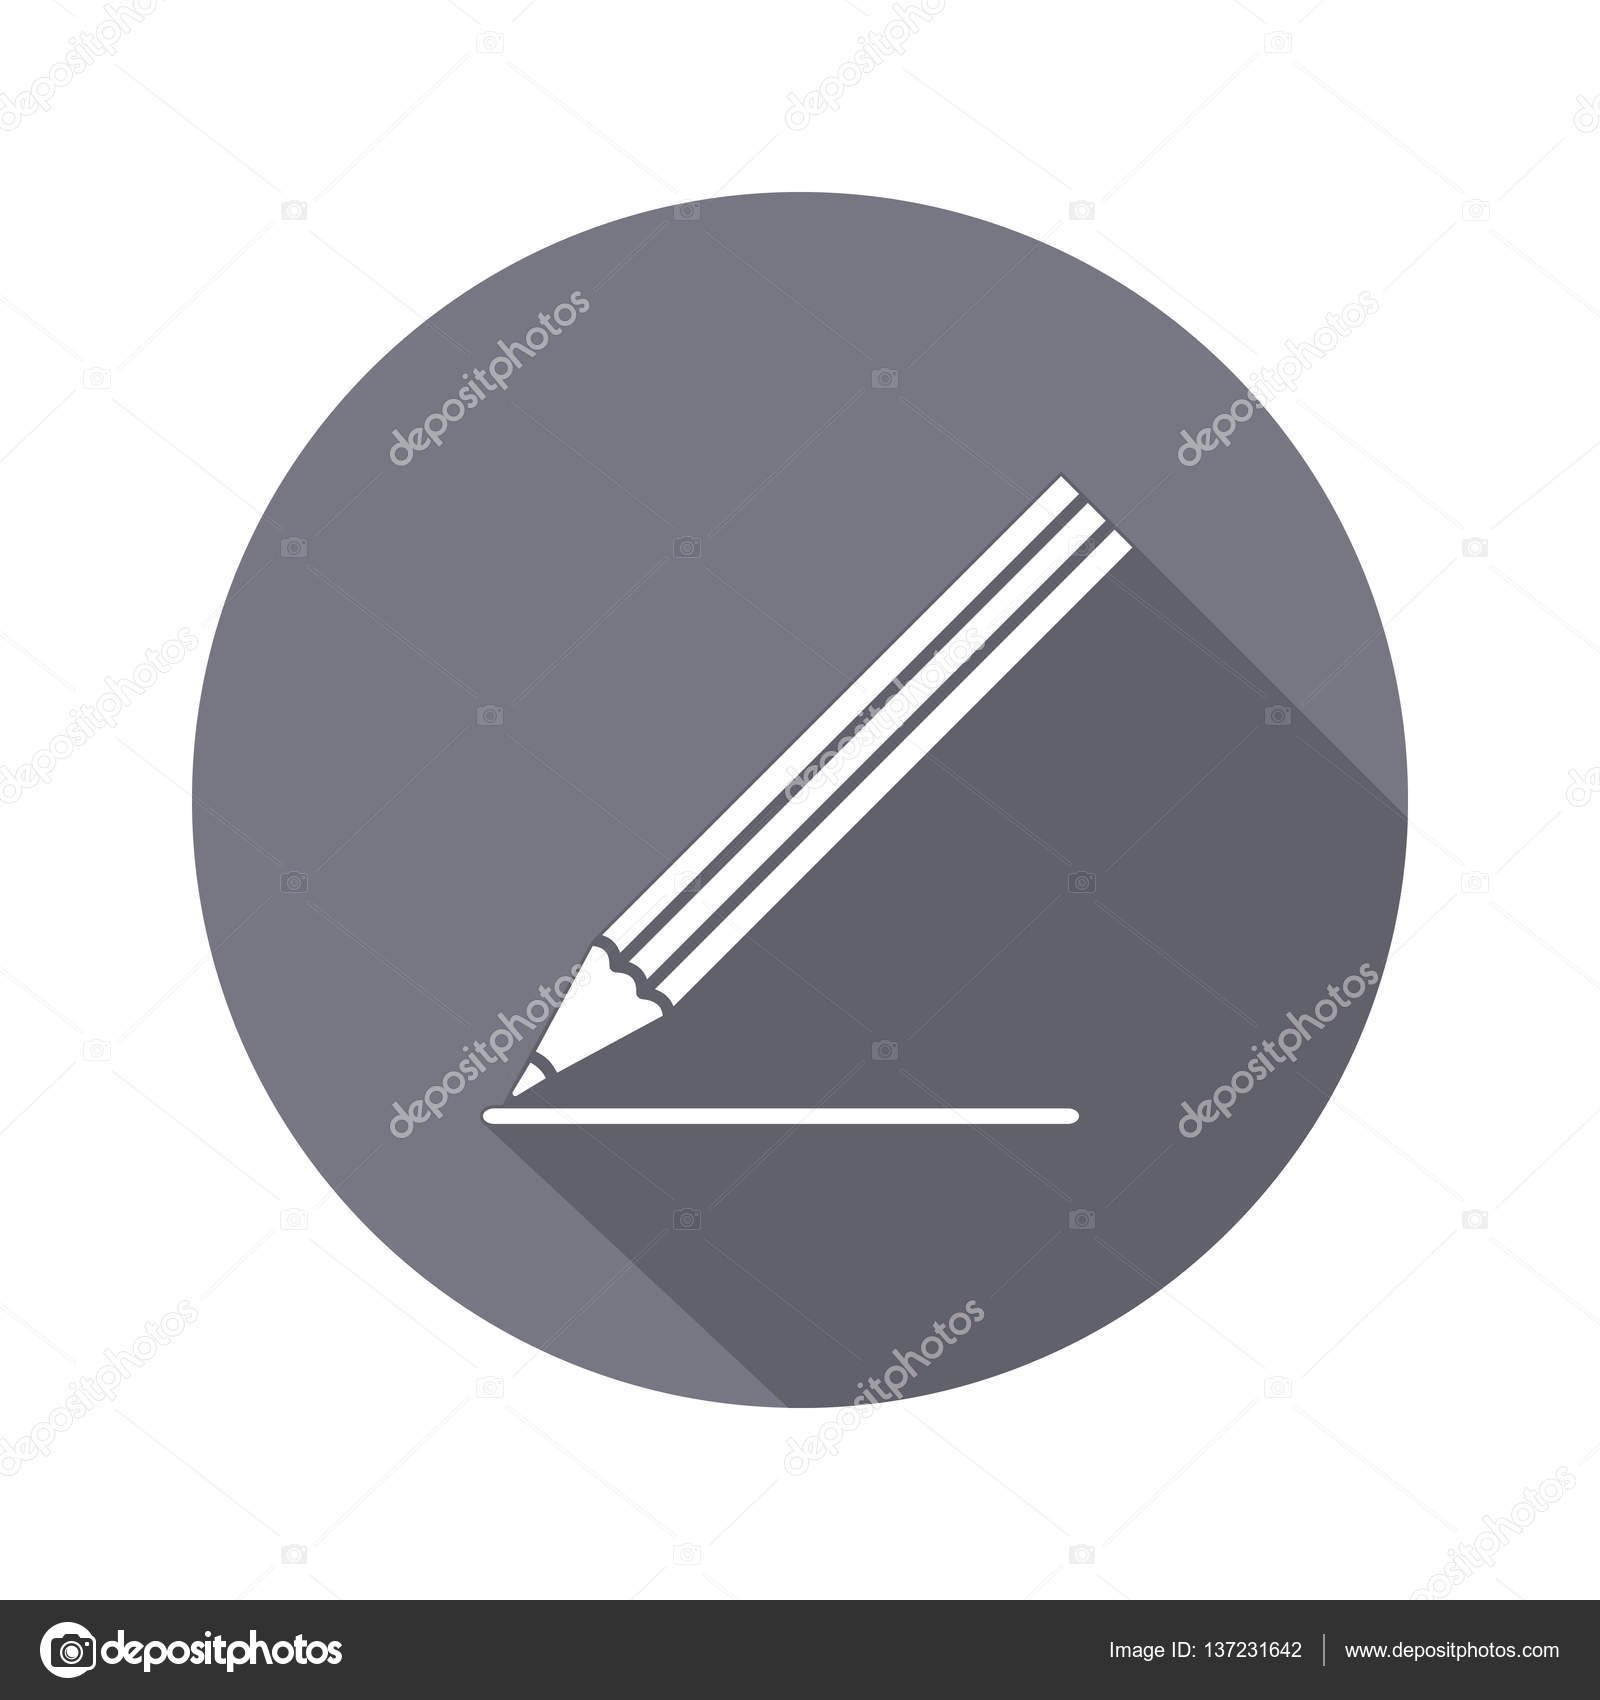 office drawing tools. drawing tools pencil icon education school clerical artistic office building design symbol white sign on round flat button vector u2014 by vlera r